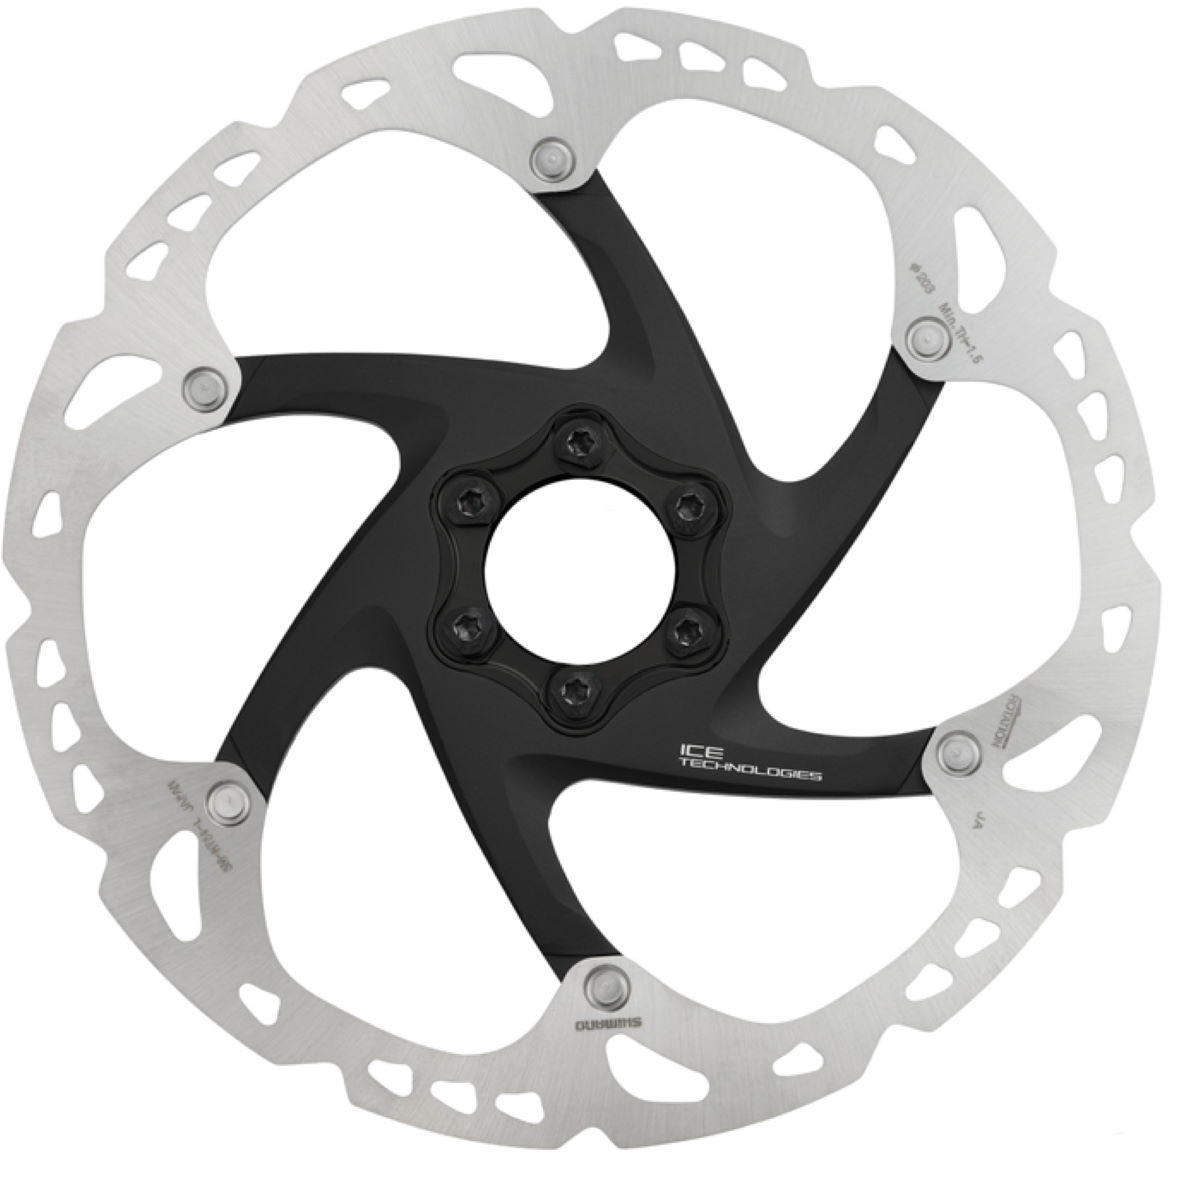 Disque Shimano XT RT86 Ice-Tec (6 trous, 203 mm) - 203mm 6-Bolt Gris Disques de freins